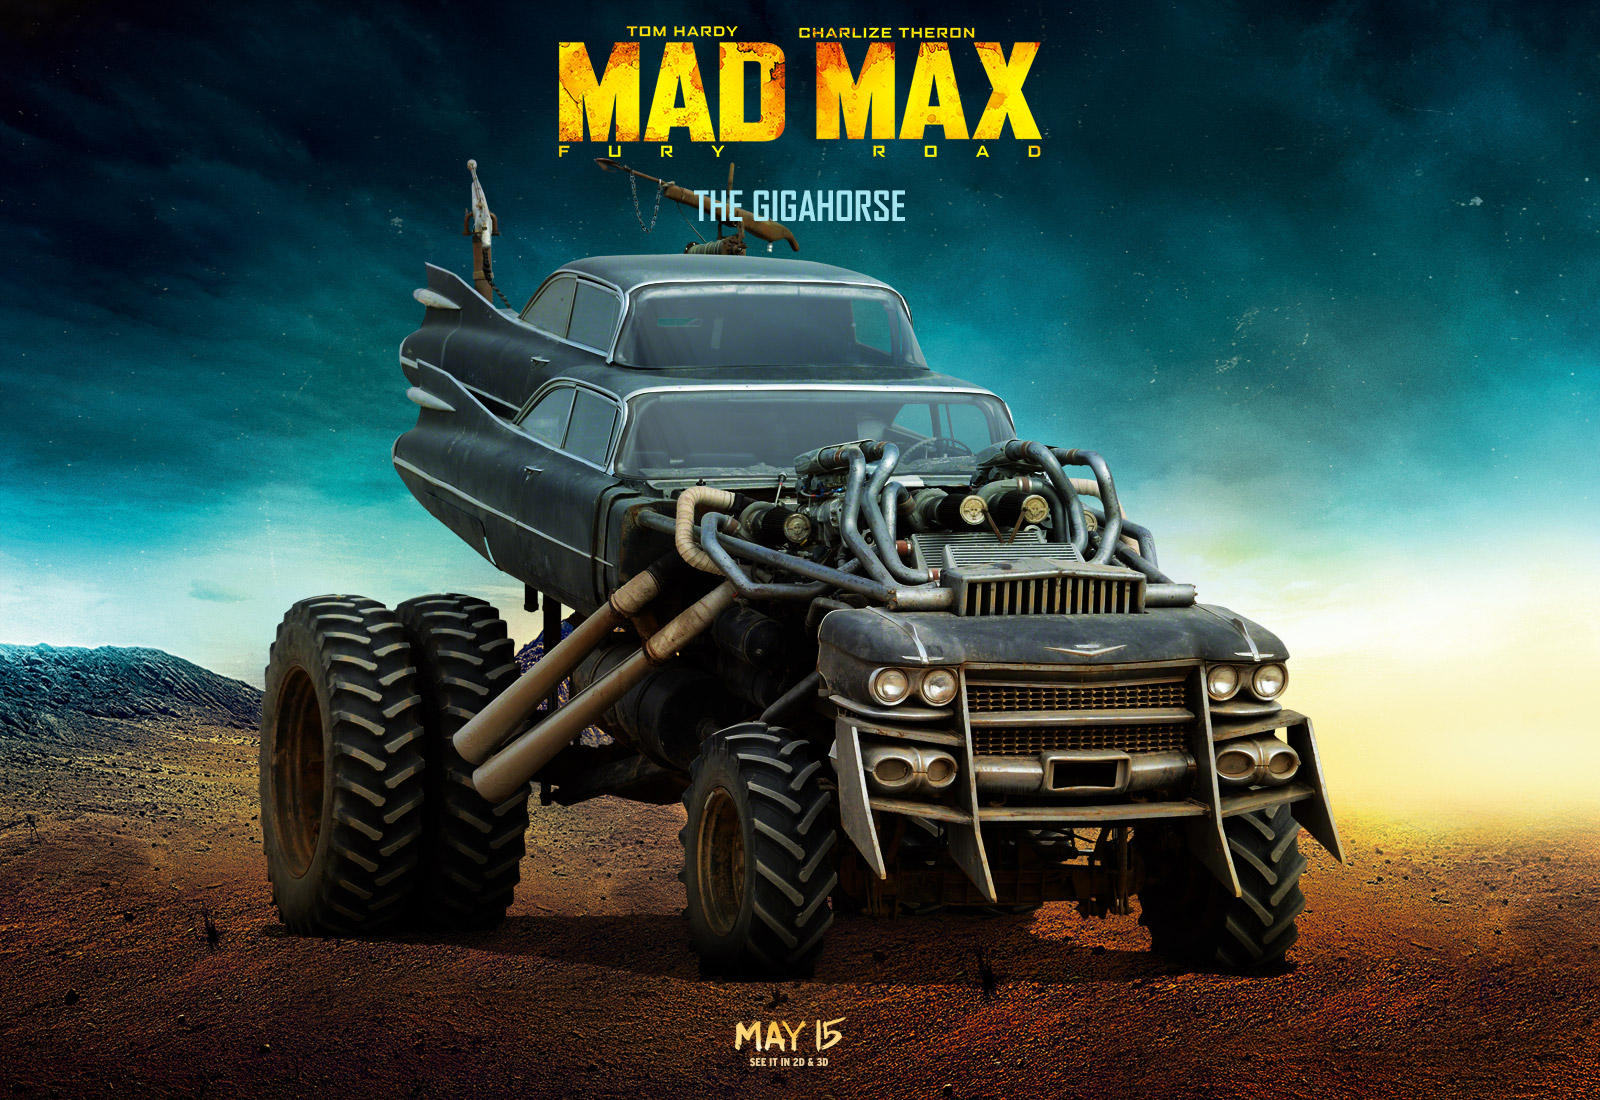 madmax-gigahorse-cars